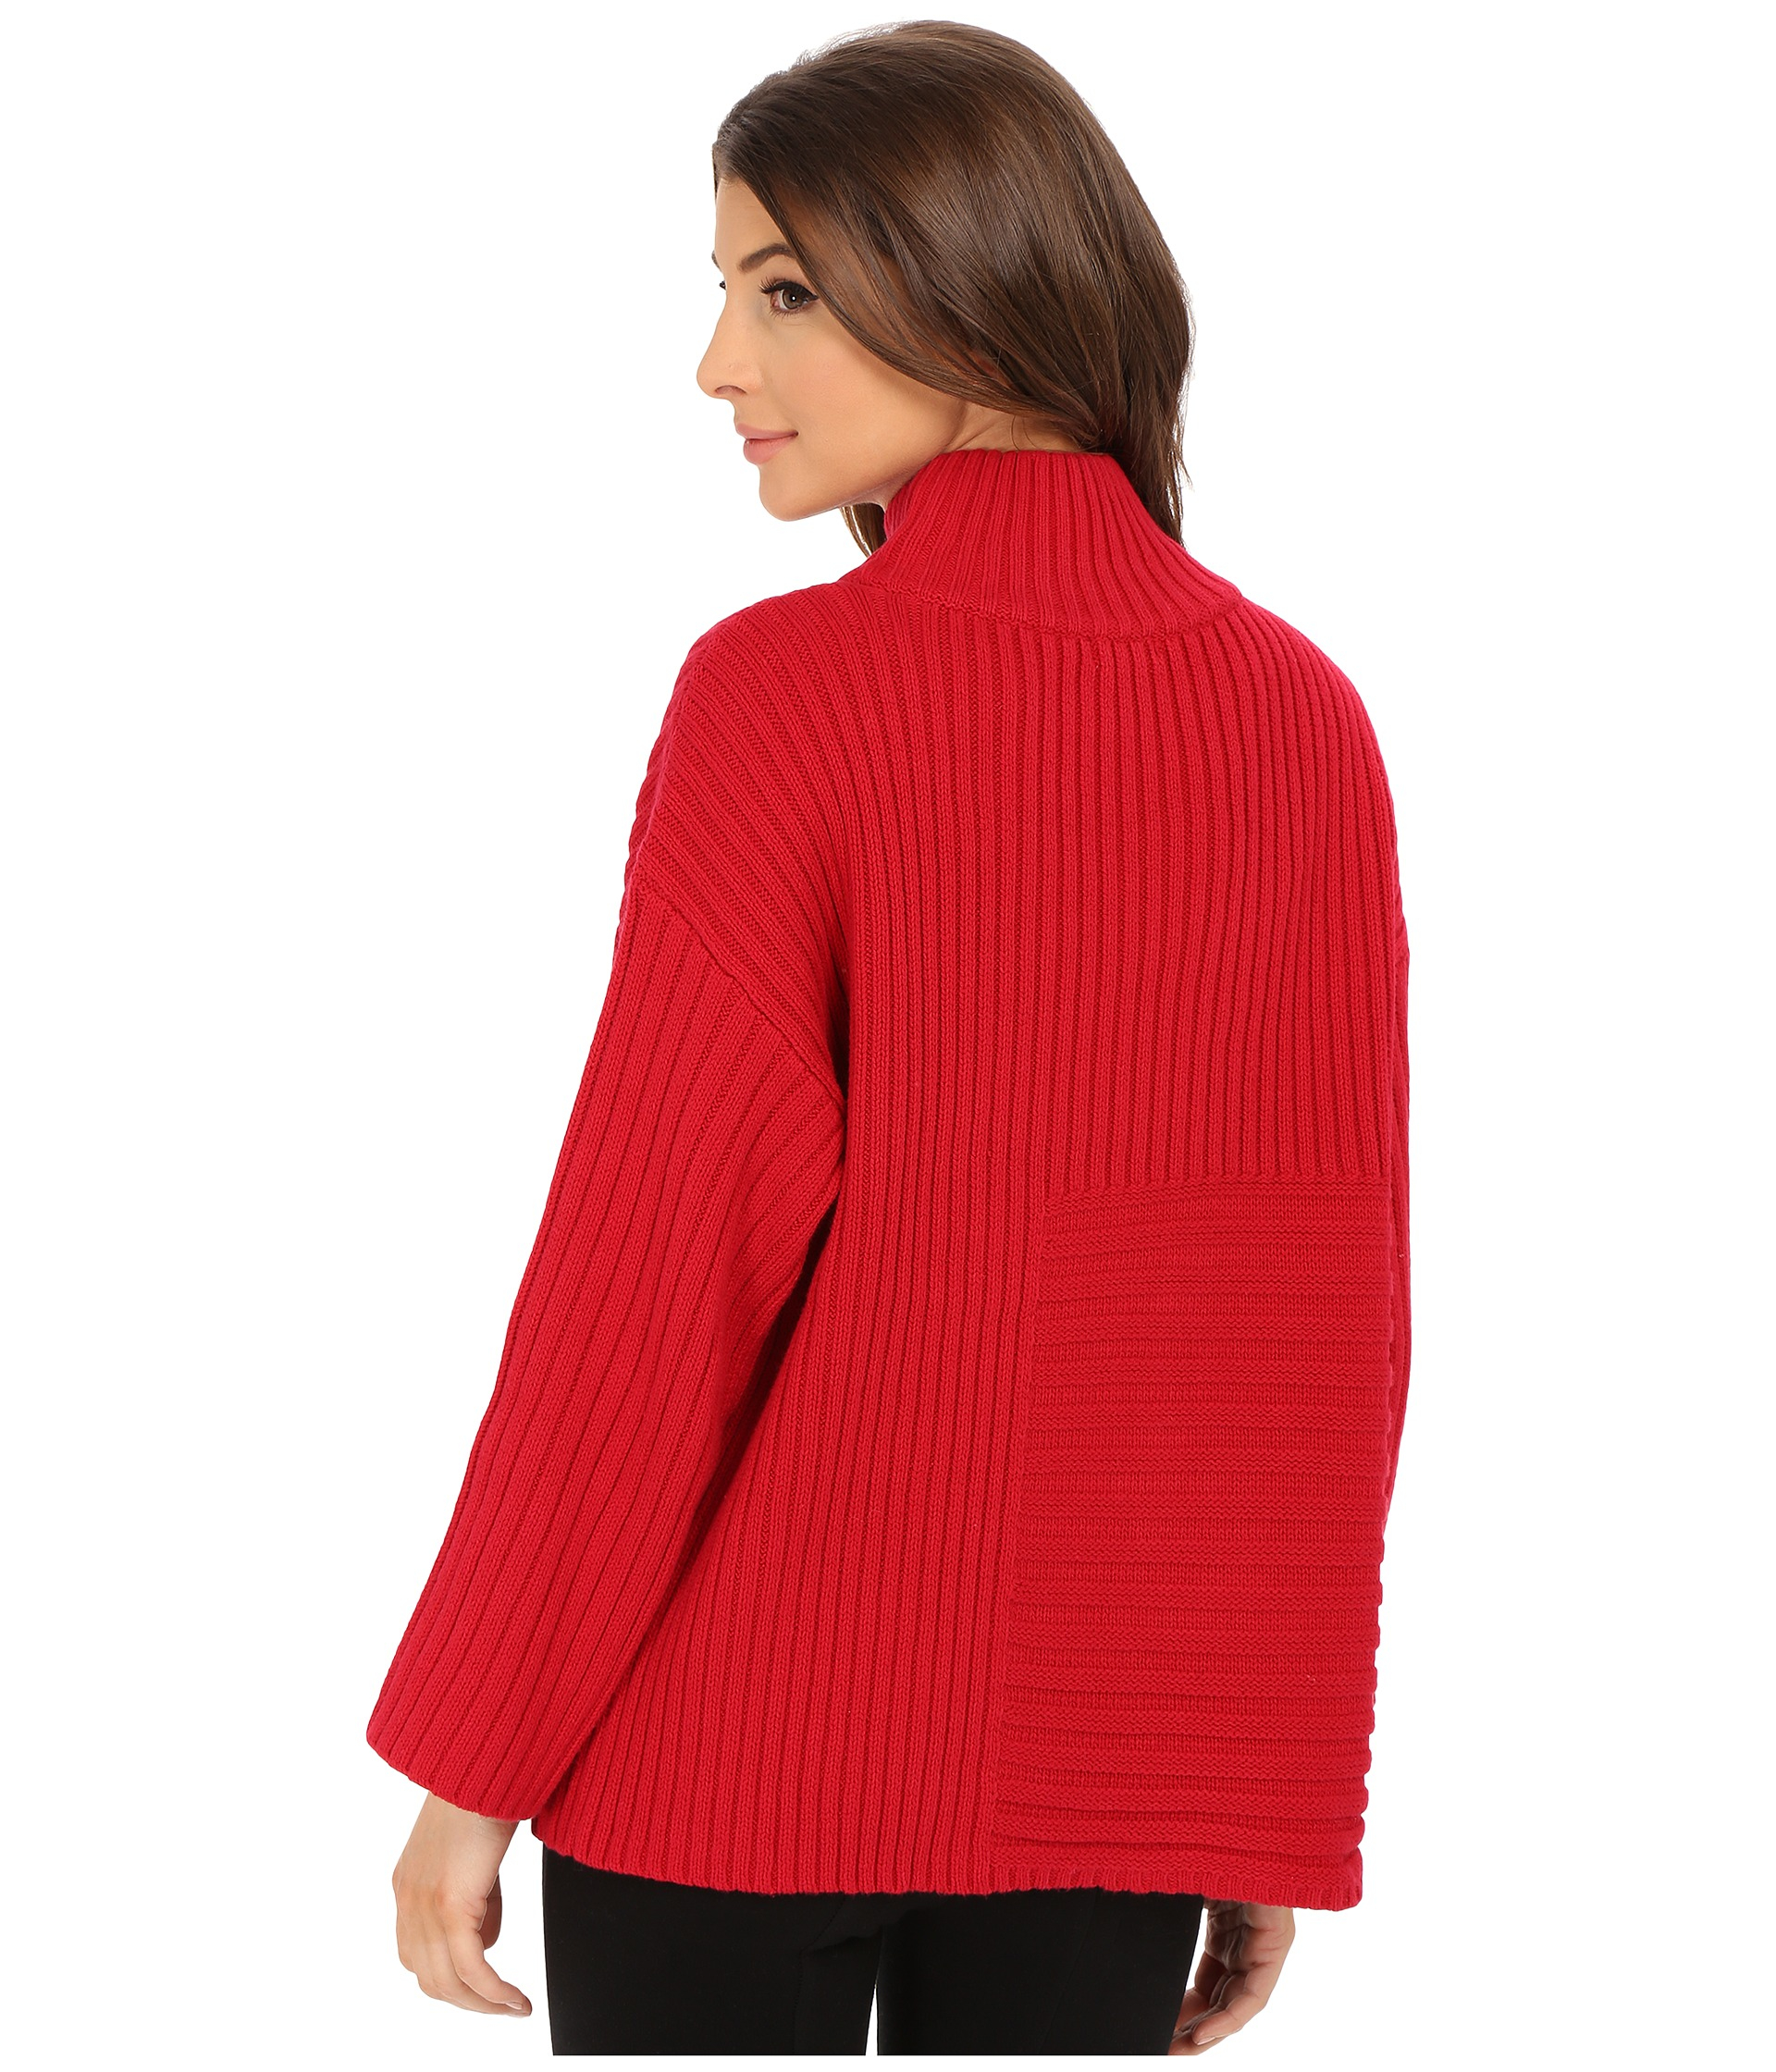 586fa7892b1 Lyst - Vince Camuto Elbow Sleeve Mix Rib Turtleneck Sweater in Red